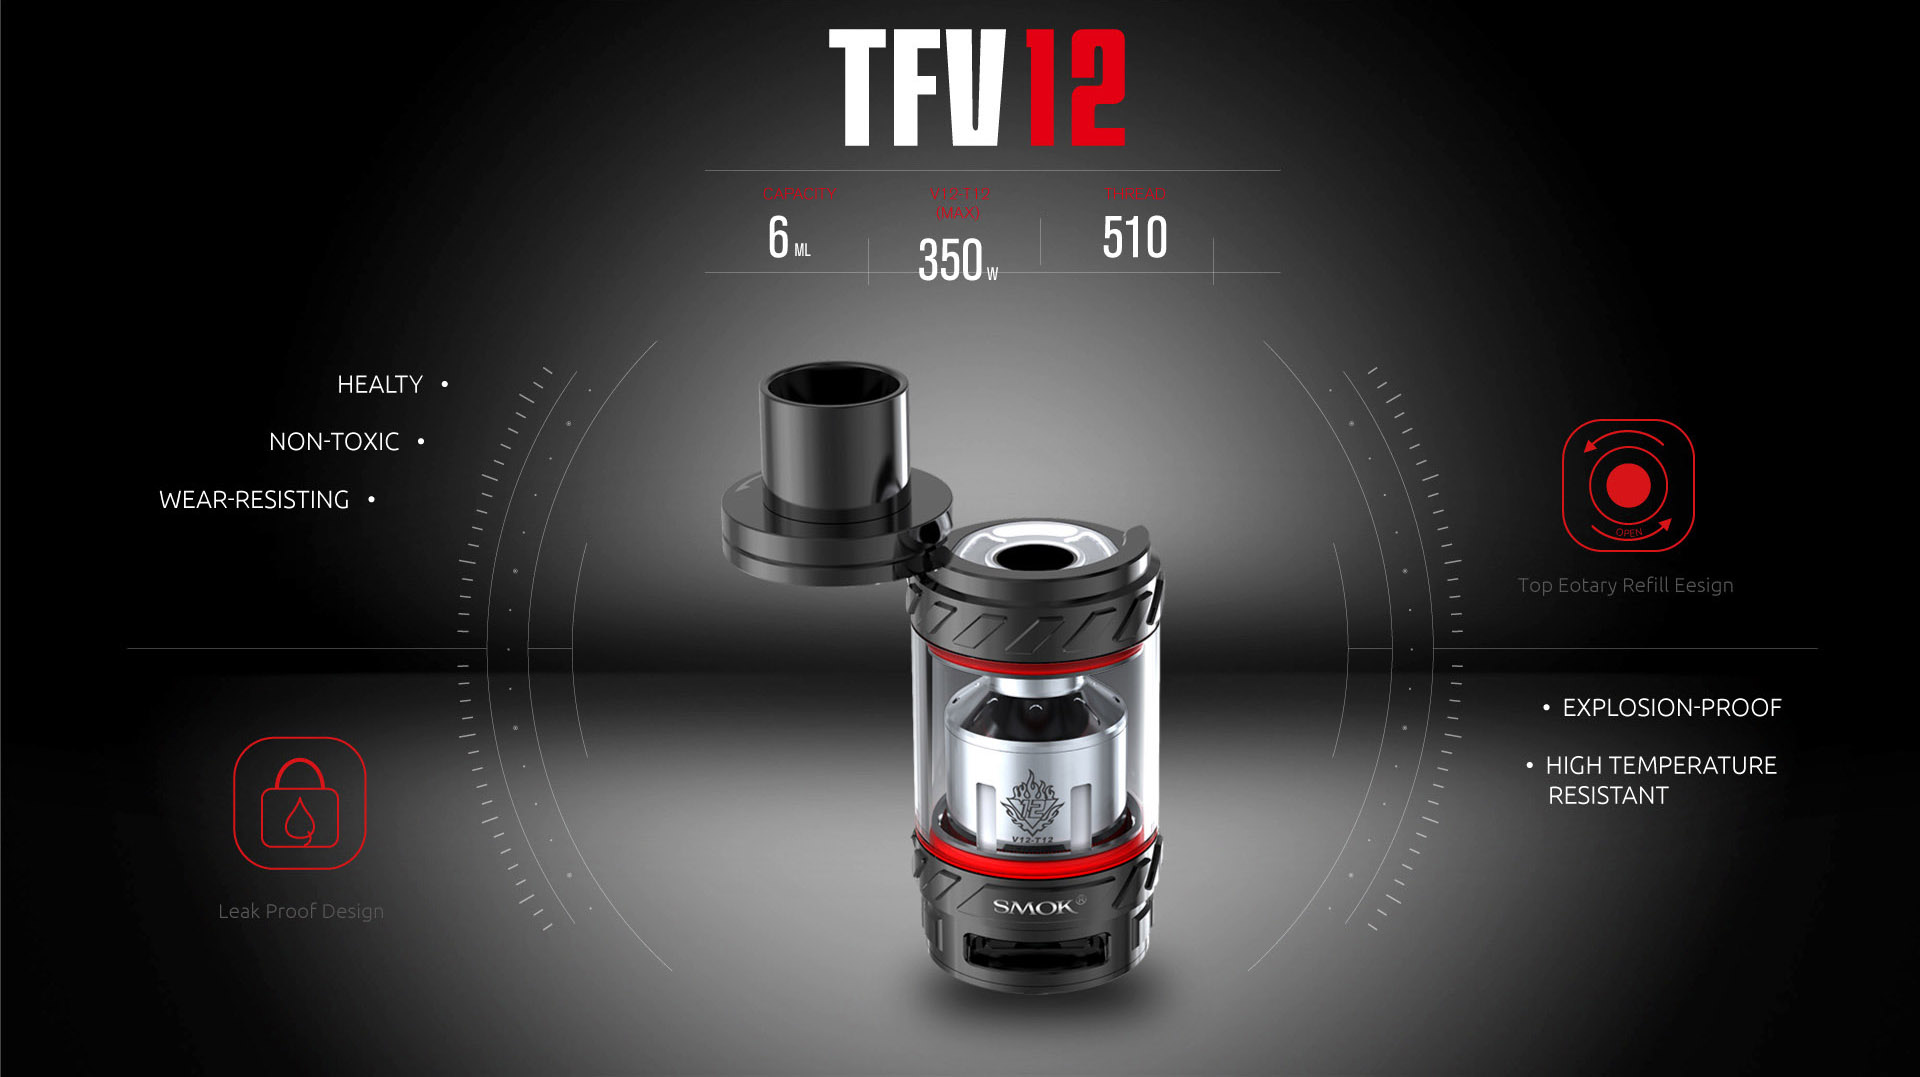 TFV12 Explosion Proof Top Rotary Fill Design